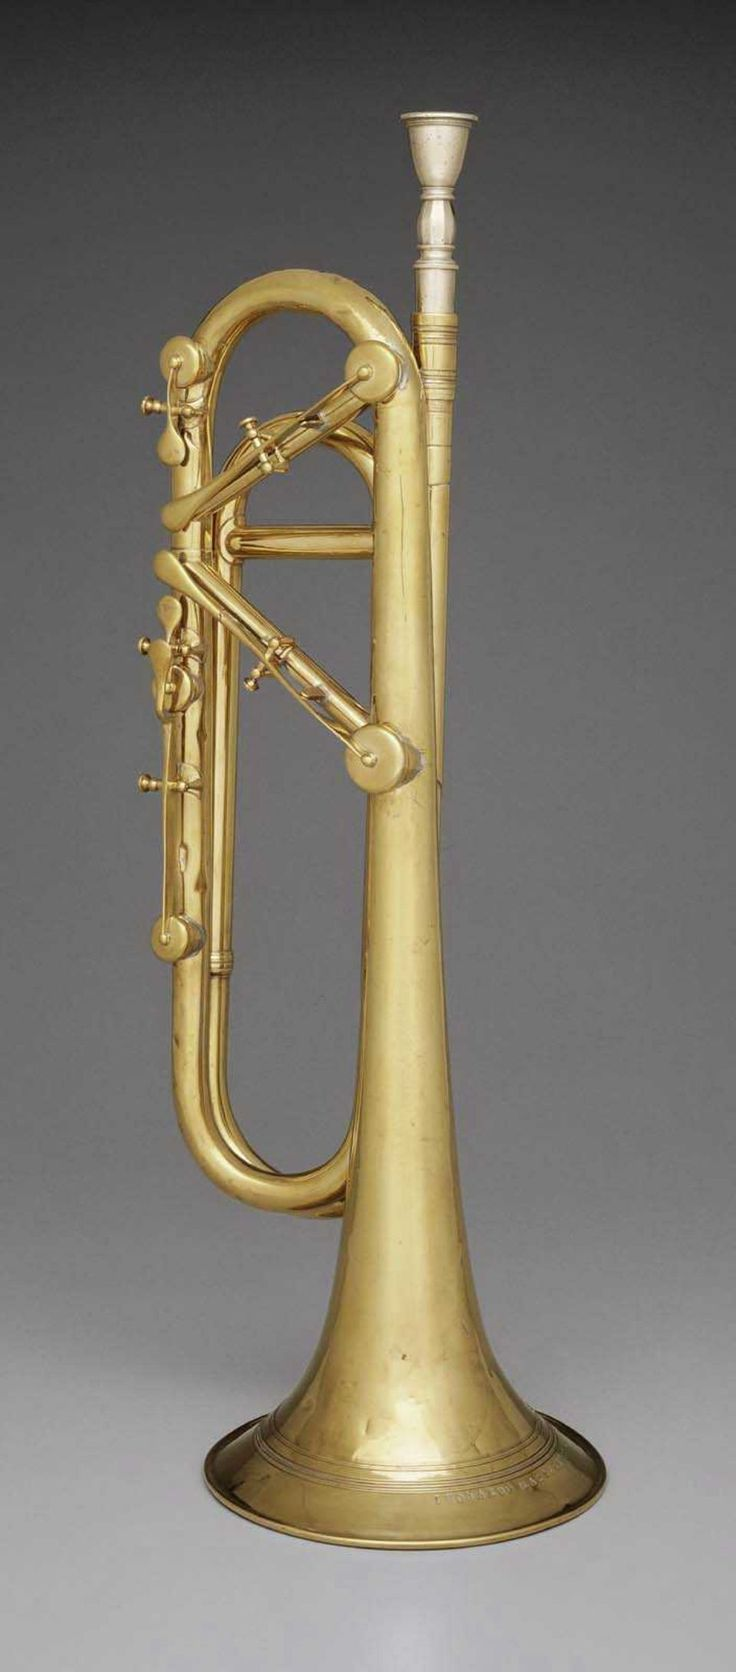 a history of the trumpet a musical instrument Learning to play the trumpet is a great way to open up all kinds of musical avenues for yourself, whether you'd like to use it as one of many mexican instruments, try out the big band sound, or go for something a little more orchestral.